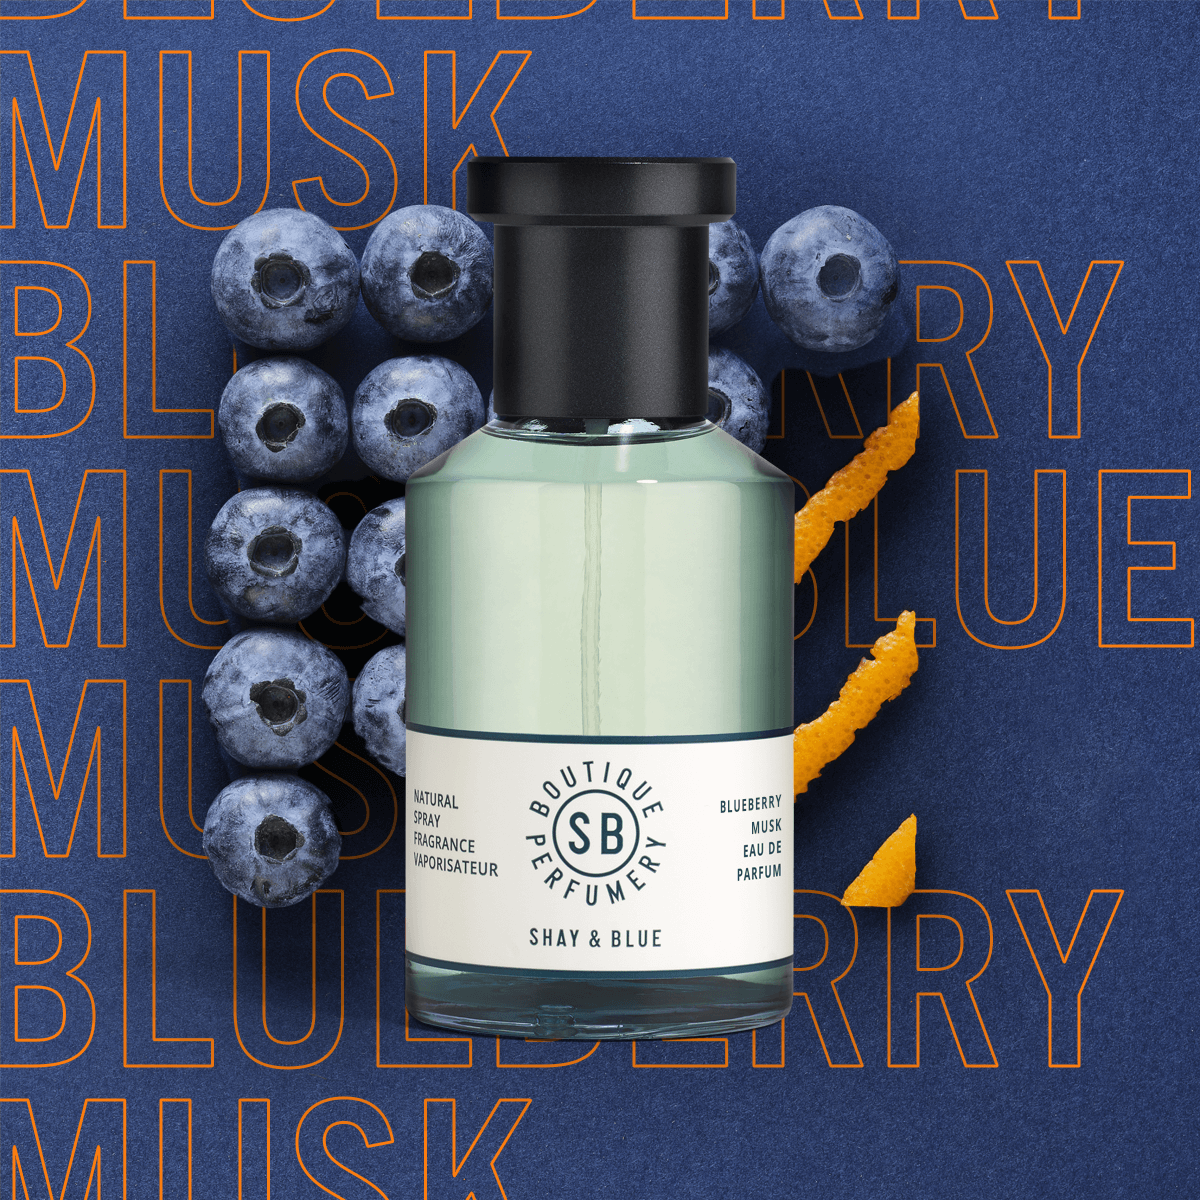 Blueberry Musk Fragrance 100ml | Soft blueberry & orange blossom fused with magnolia and silky cashmere. | Clean All Gender Fragrance | Shay & Blue